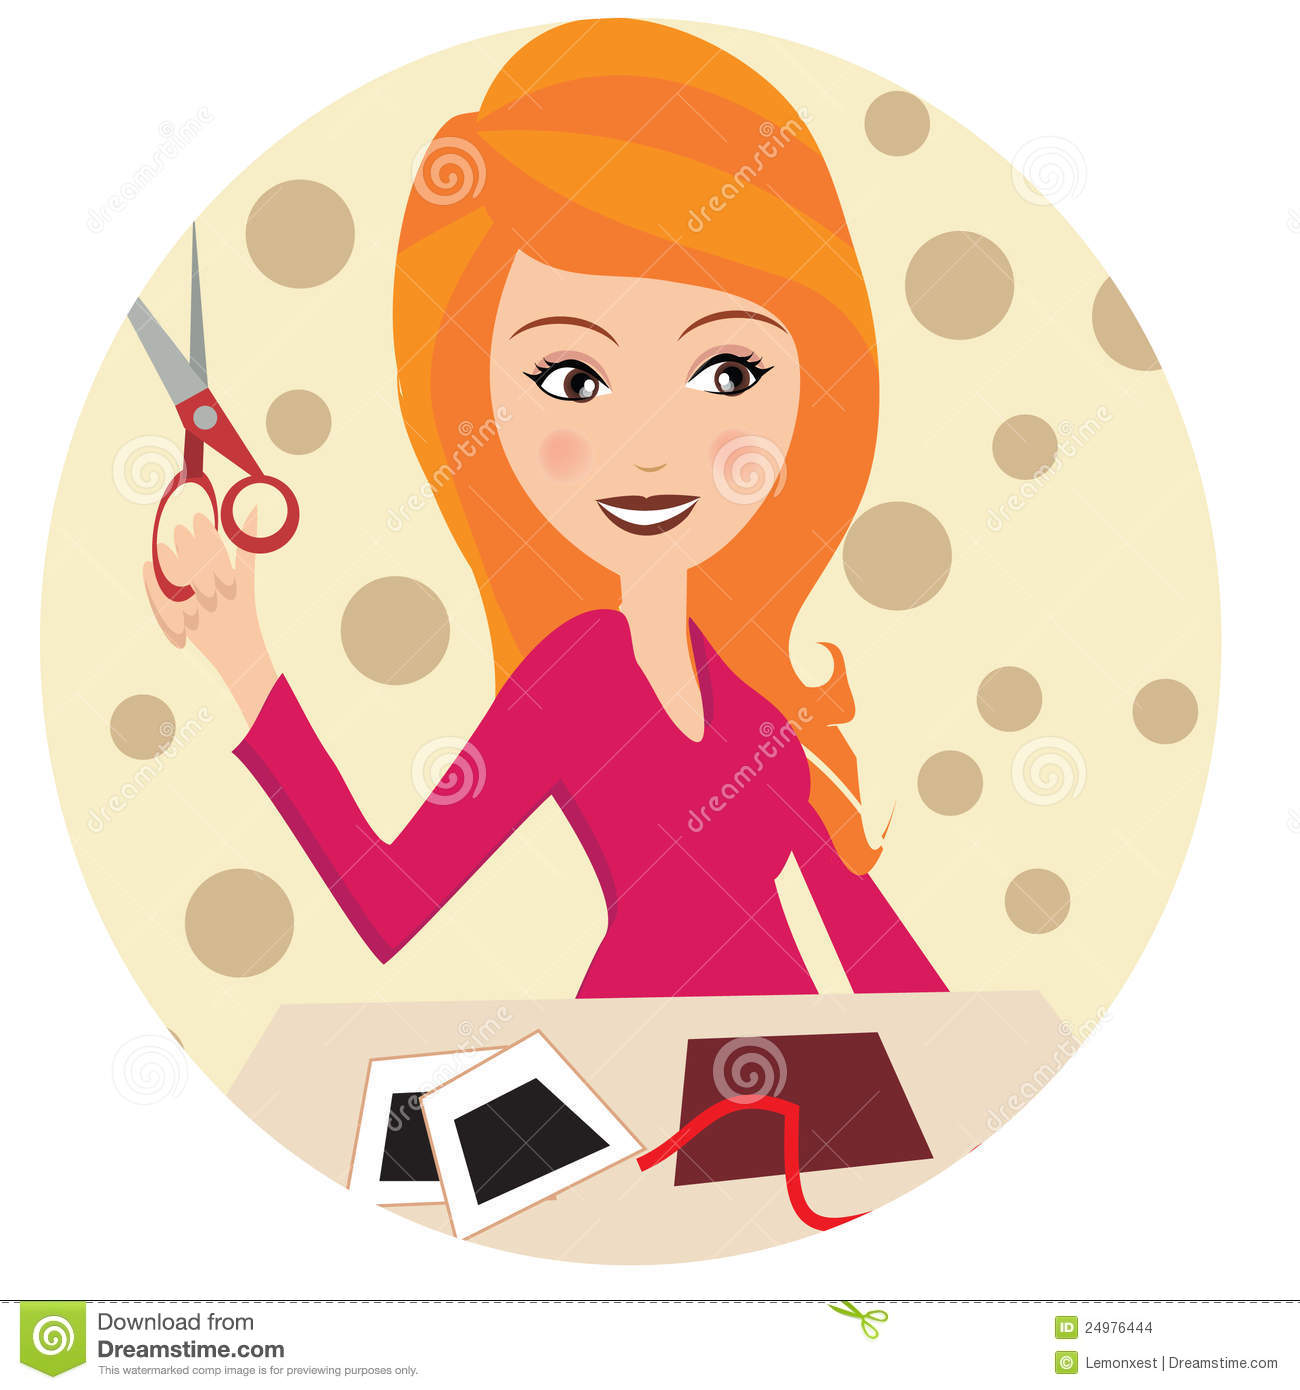 Clip Art Of People Crafting